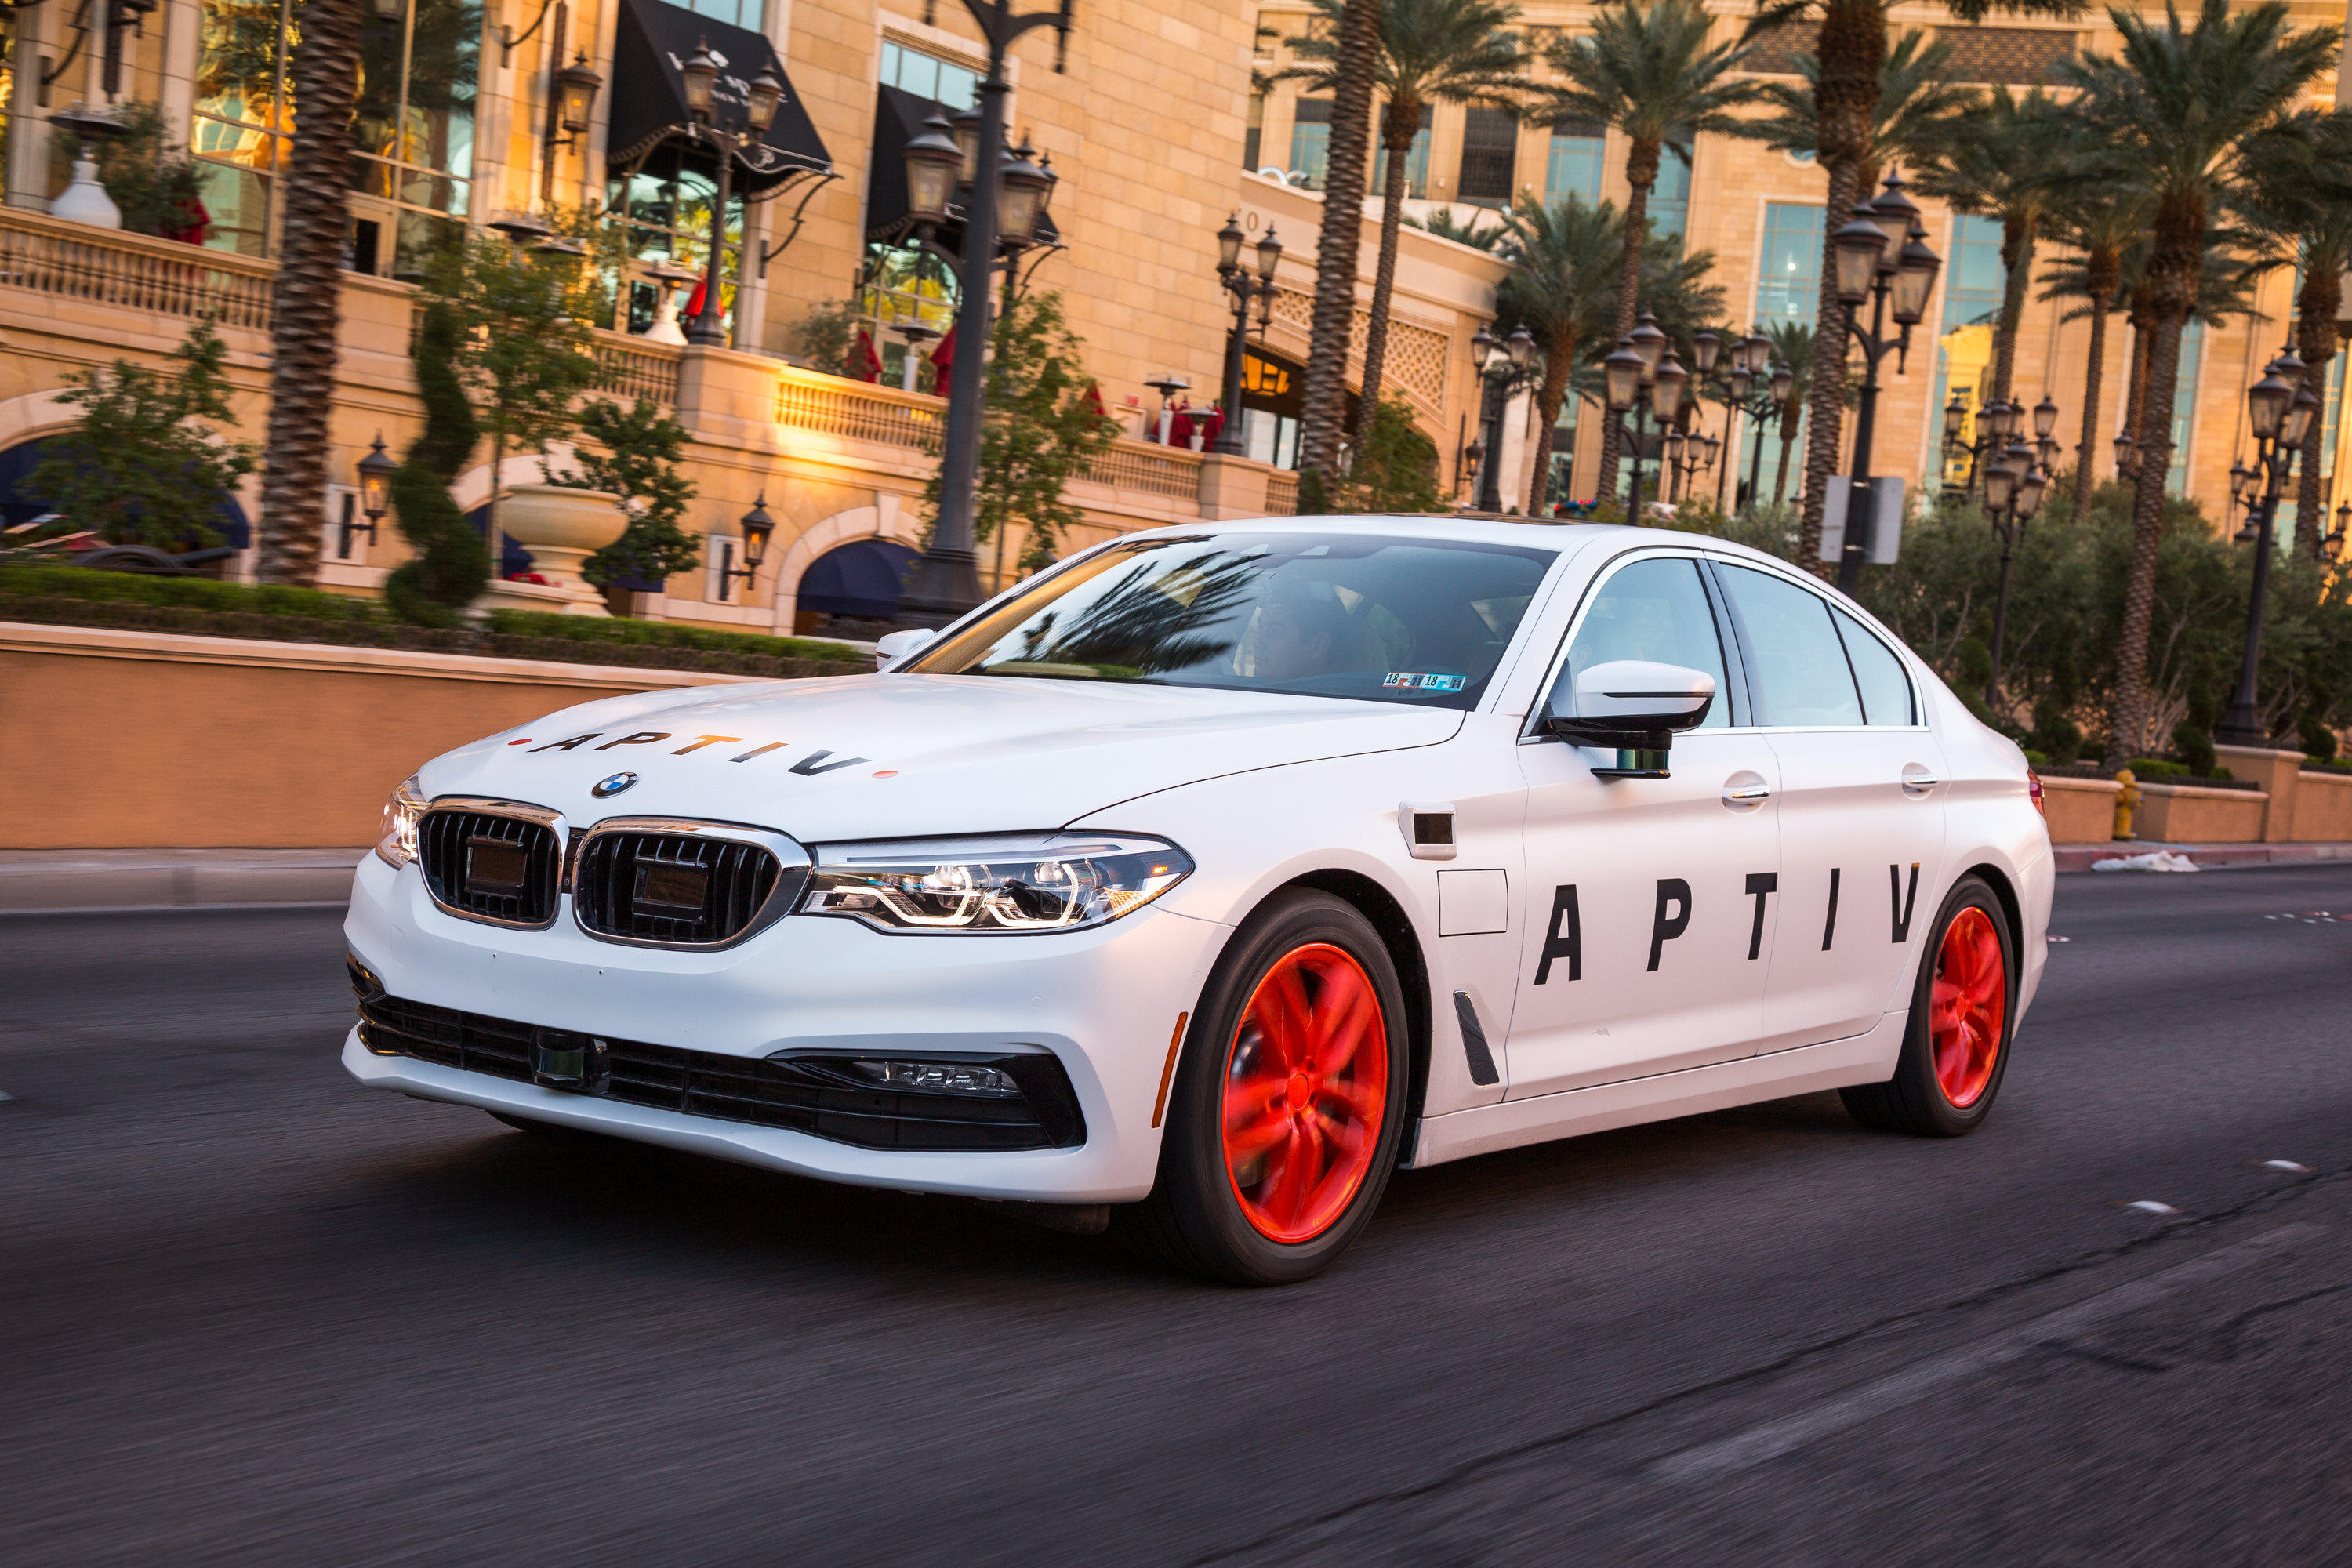 Aptiv Lyft CES Self-Driving Car